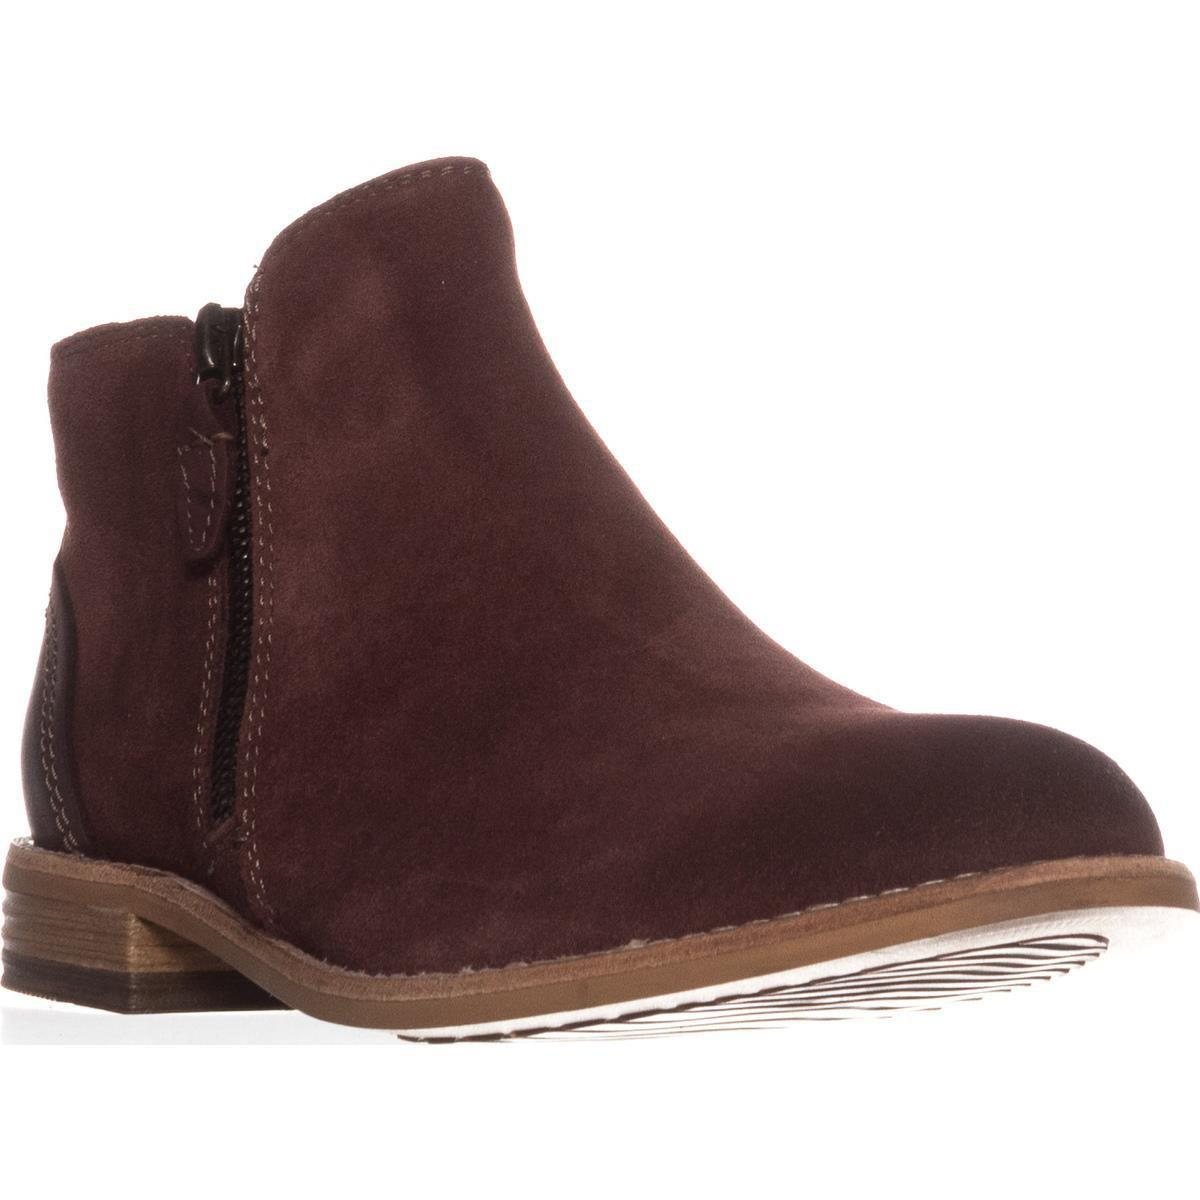 Lyst - Clarks Maypearl Juno Flat Ankle Boots in Brown for Men b2db709f2